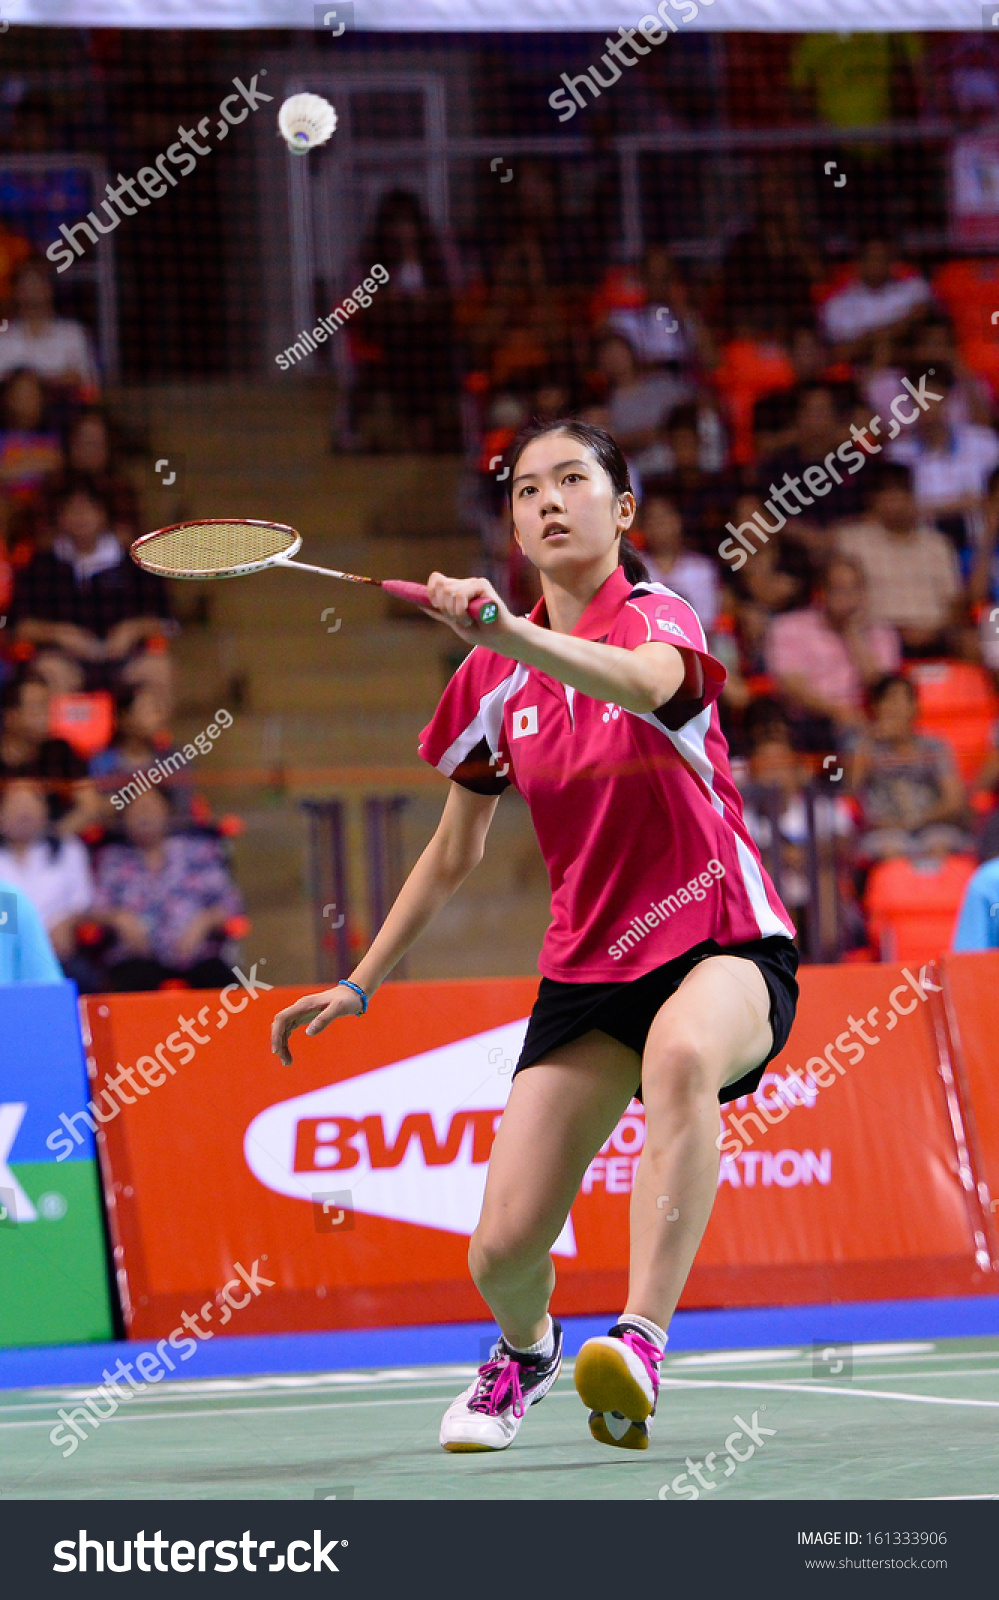 Bkkthanov3aya Ohori During Her Womens Singles Stock